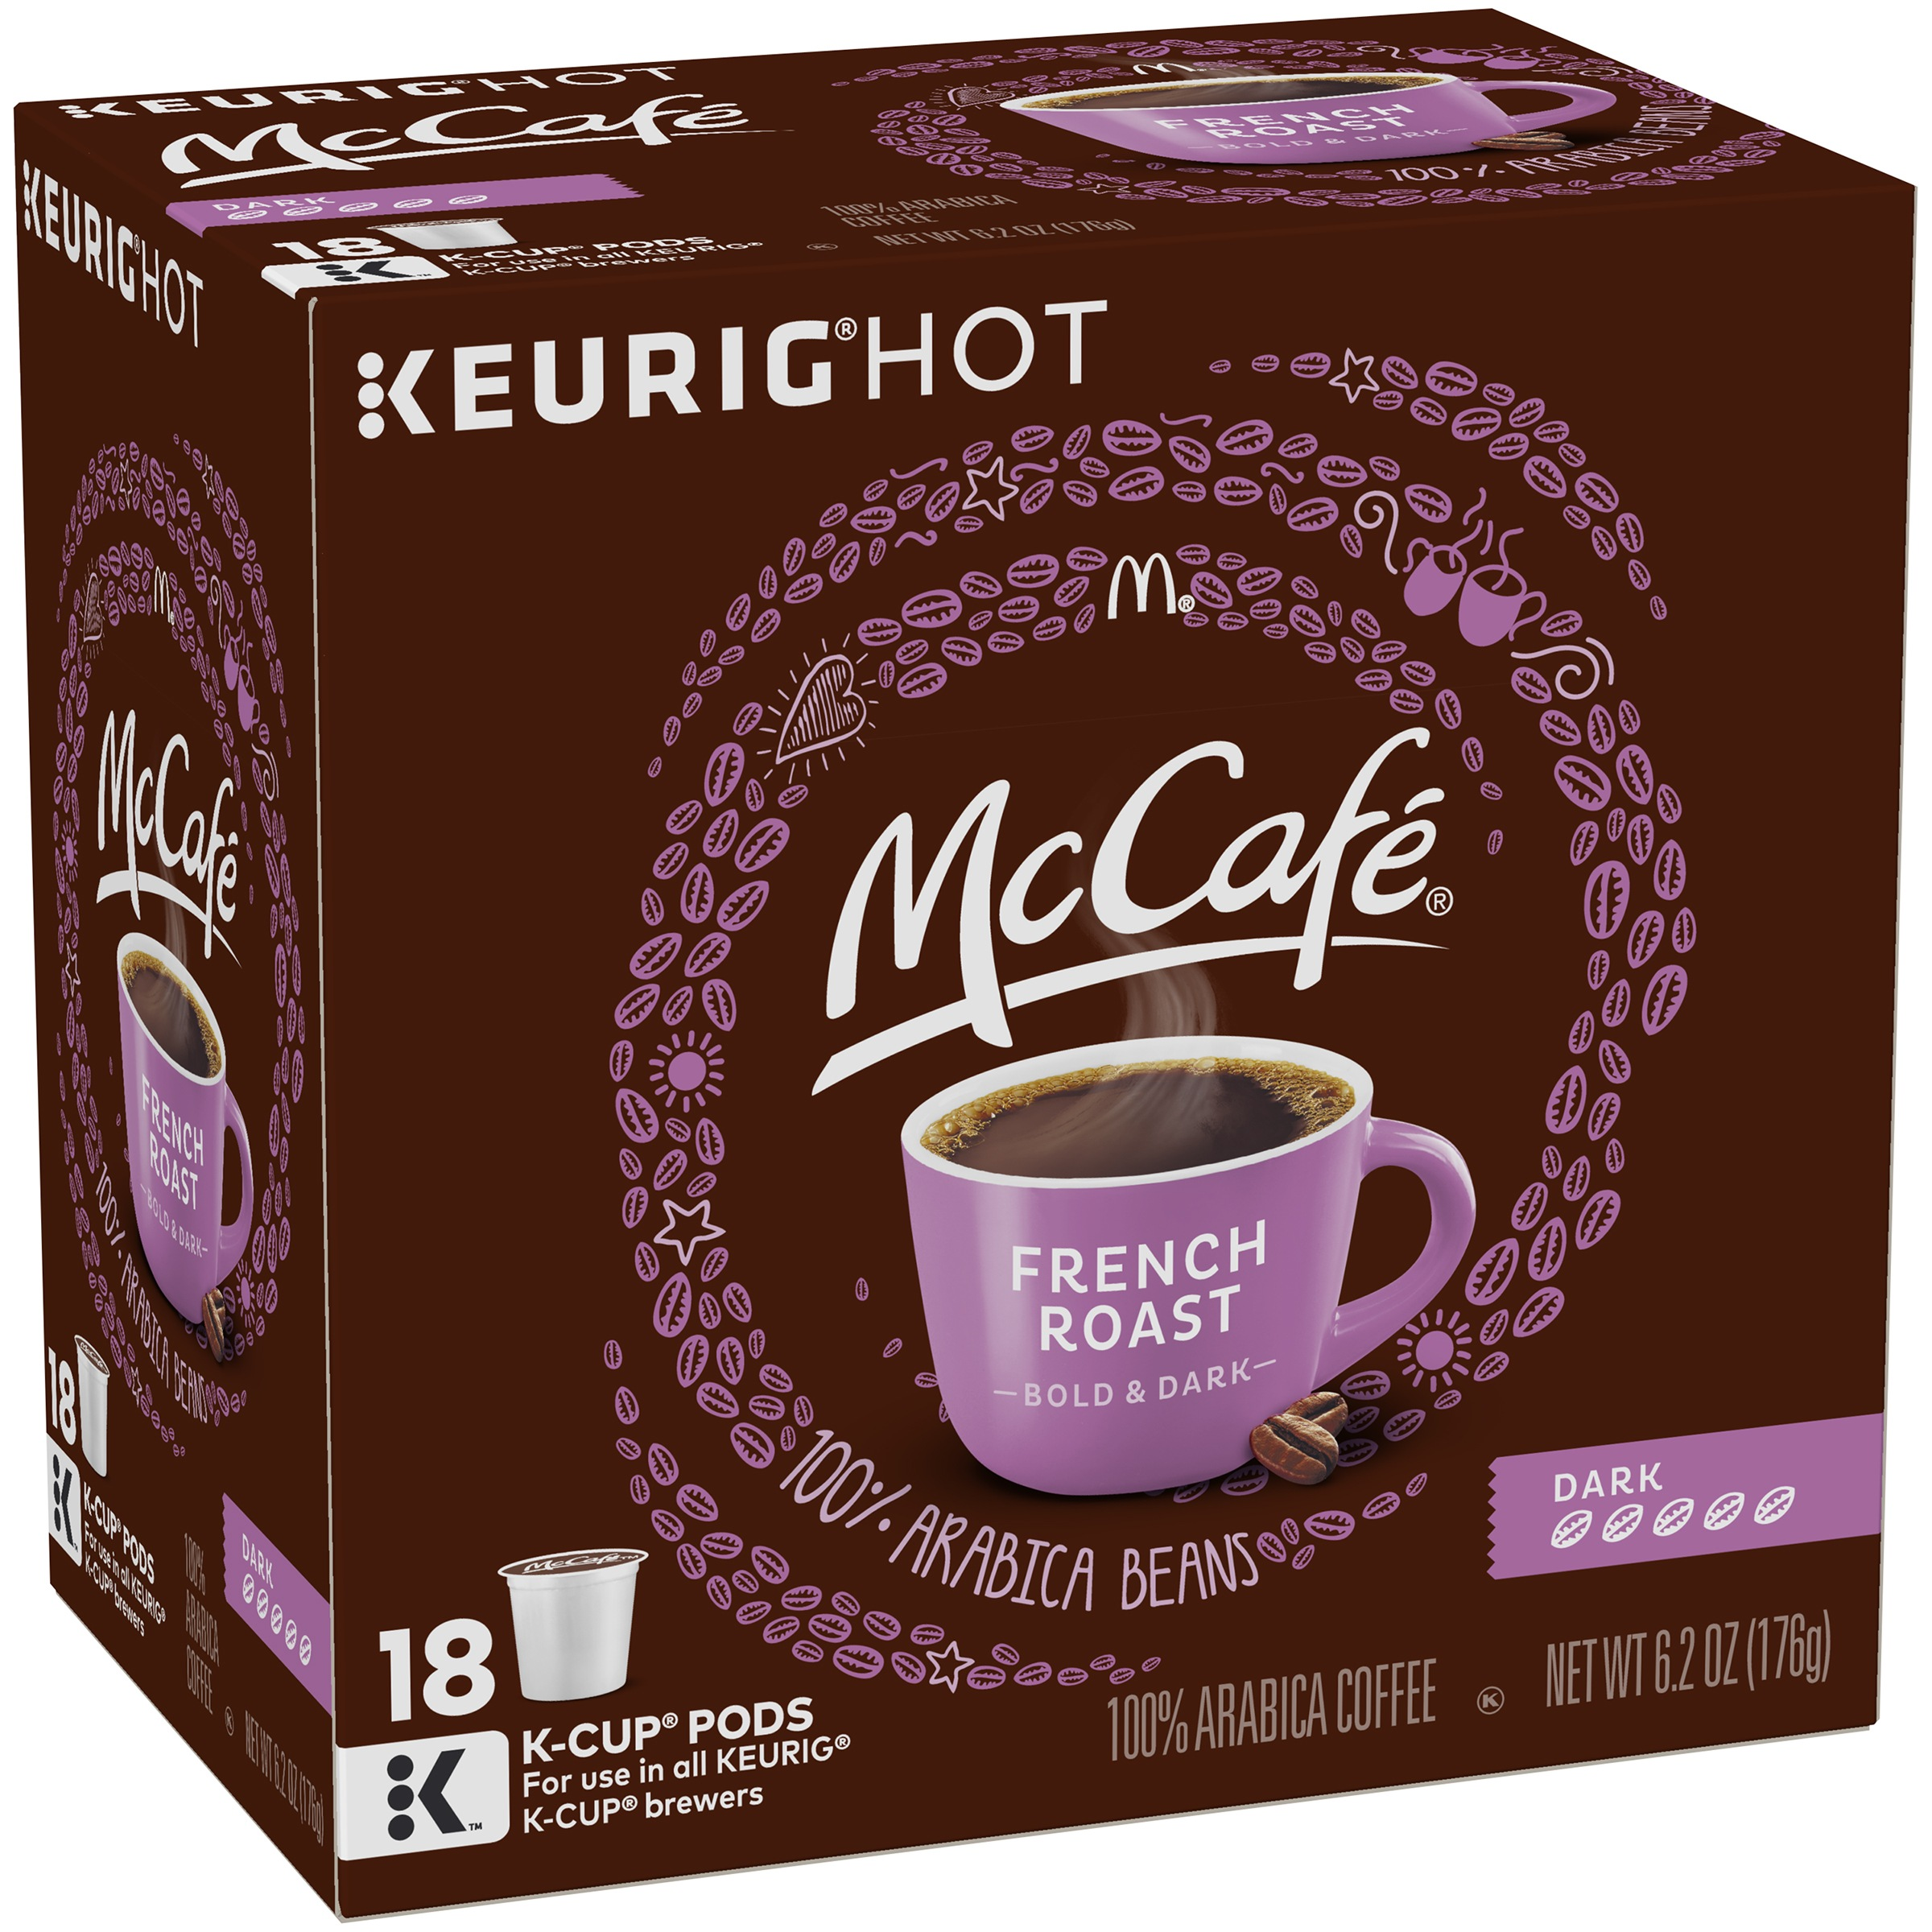 McCafe French Roast Dark Coffee K-Cup Pods, 18 count, 6.2 Oz